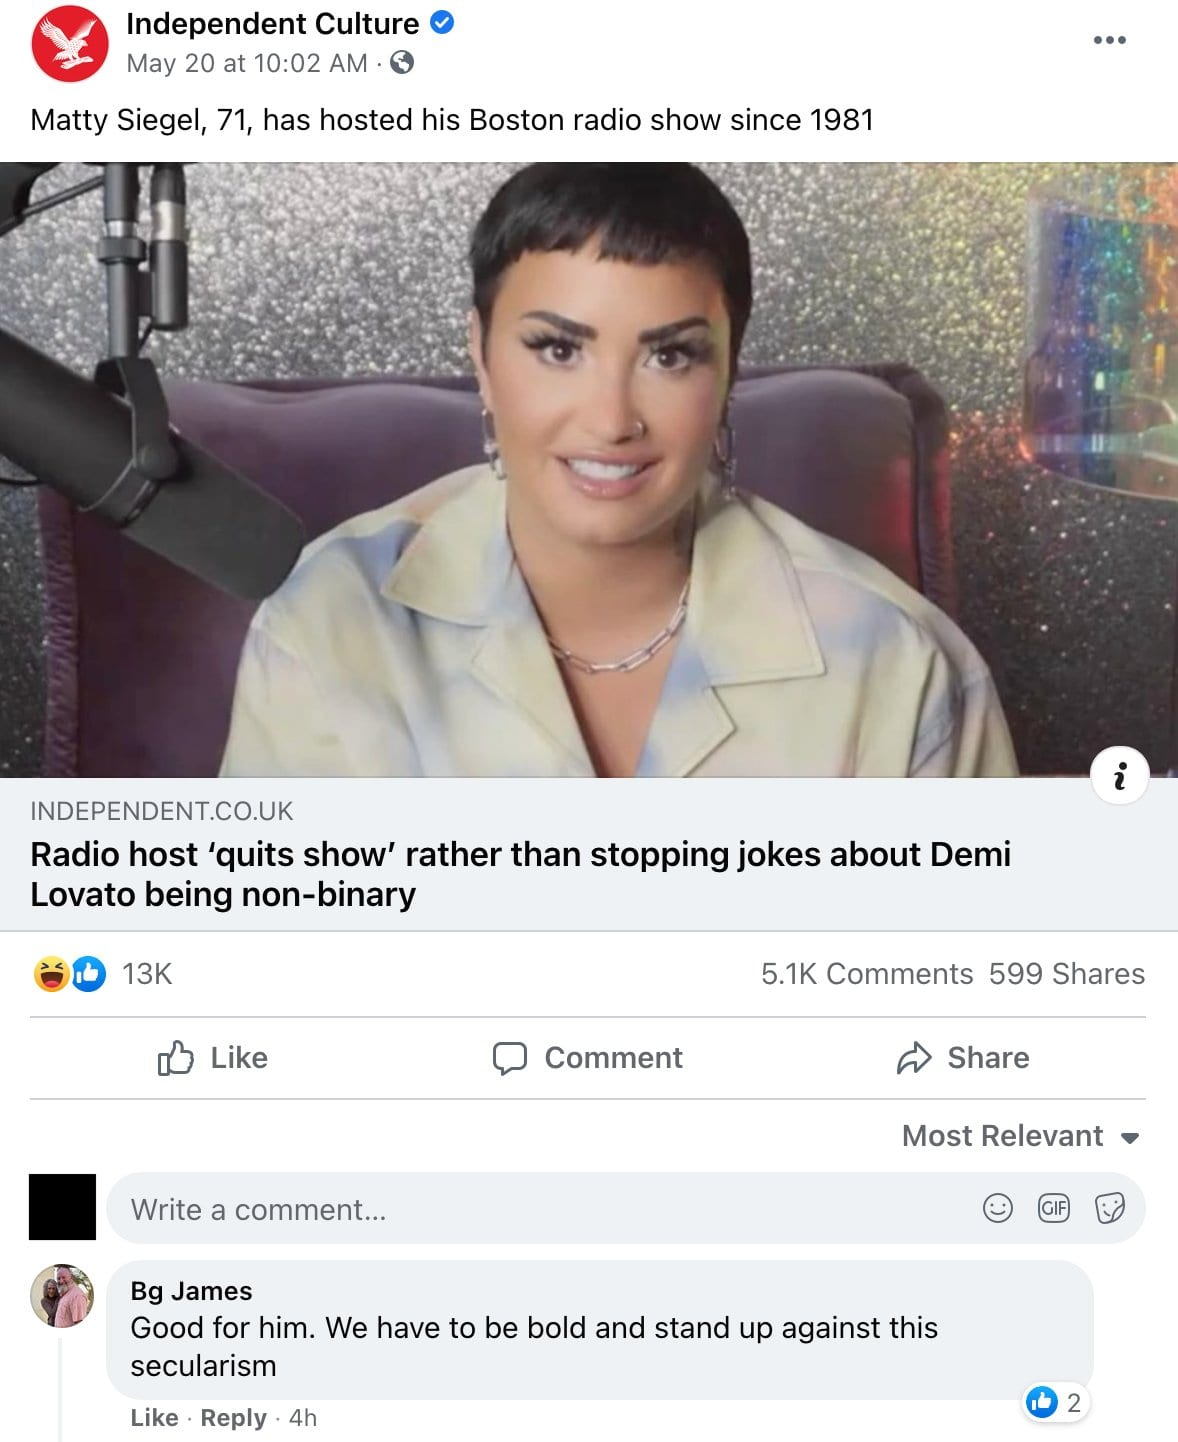 Controversial Statement By Road Dogg About Non-Binary Celebrity Demi Lovato